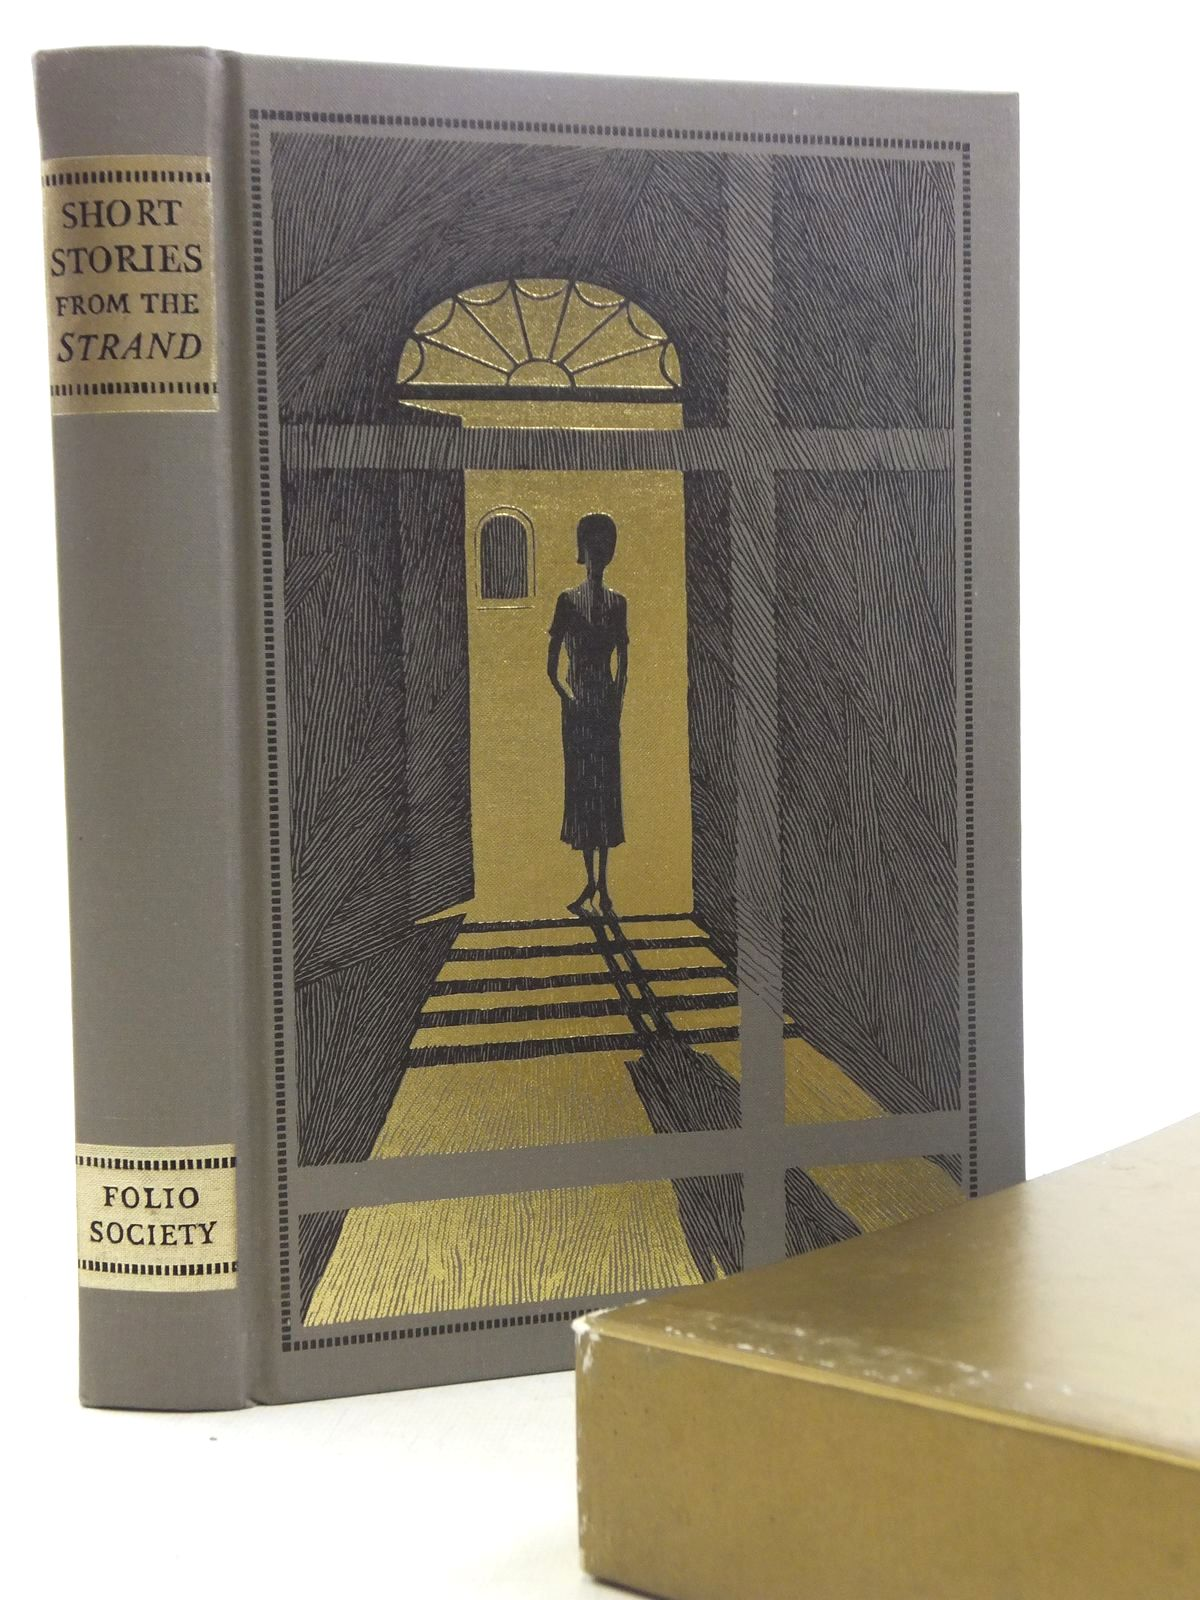 Photo of SHORT STORIES FROM THE 'STRAND' written by Beare, Geraldine illustrated by Eccles, David published by Folio Society (STOCK CODE: 2117925)  for sale by Stella & Rose's Books